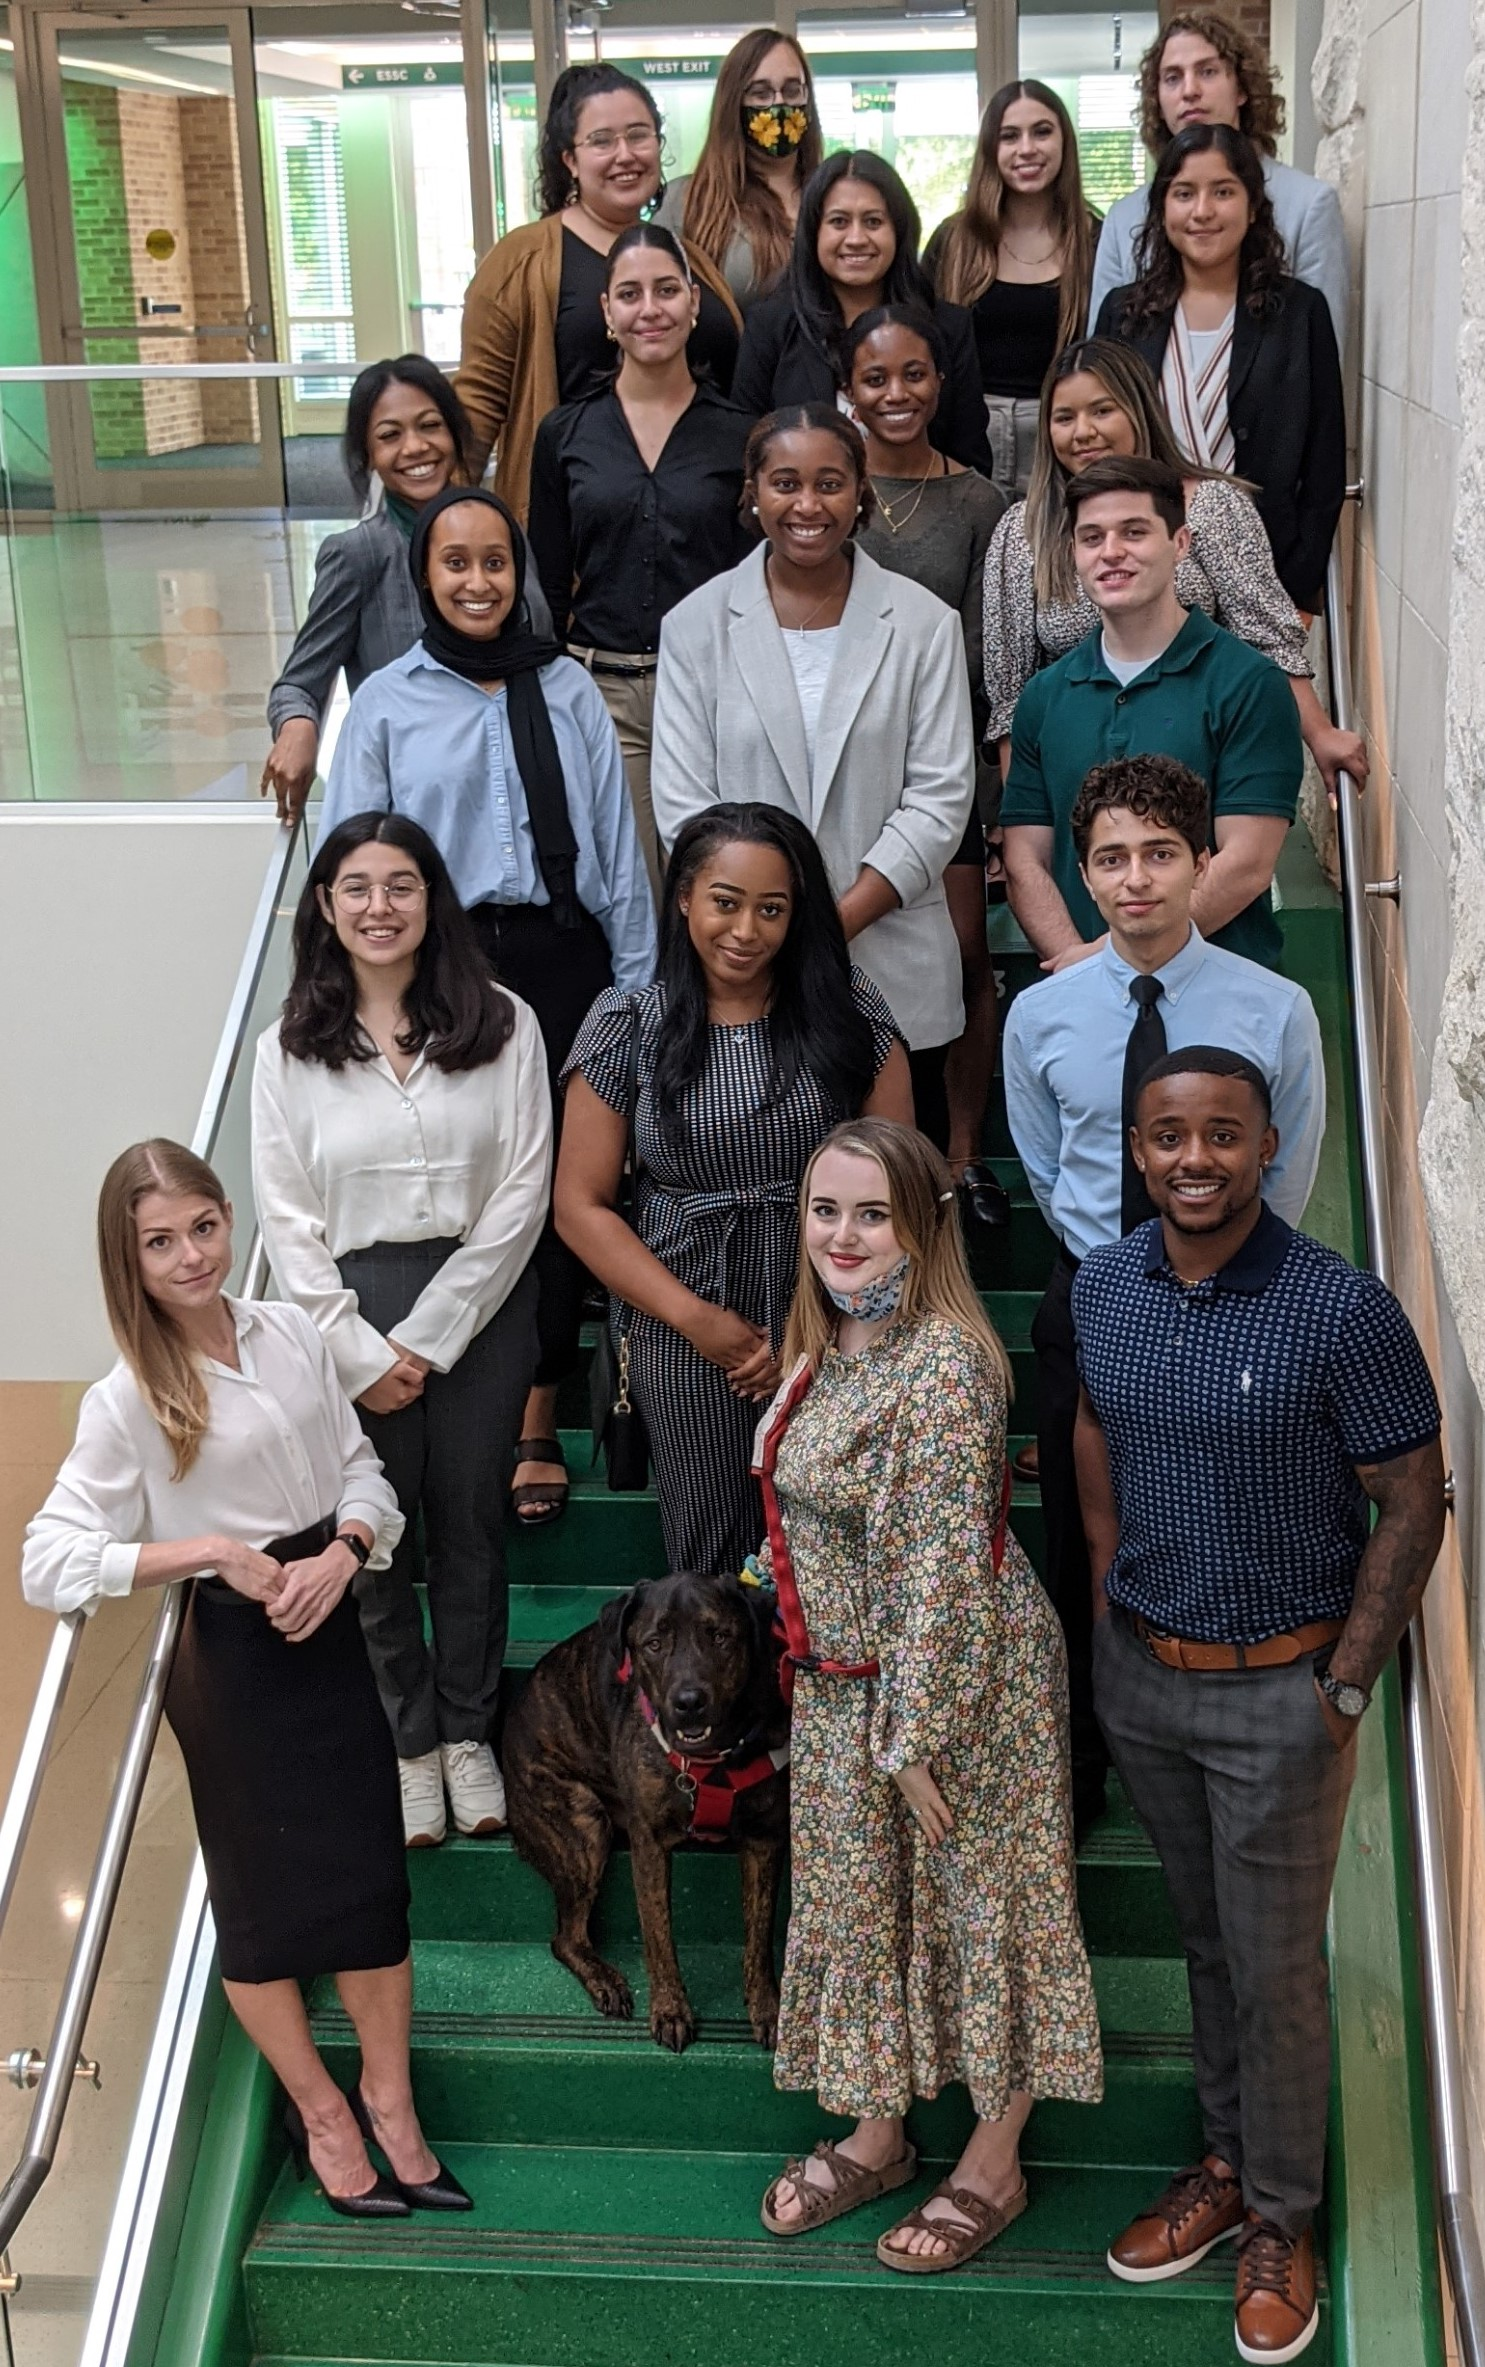 2021 summer cohort scholars and director posed on stairs in union